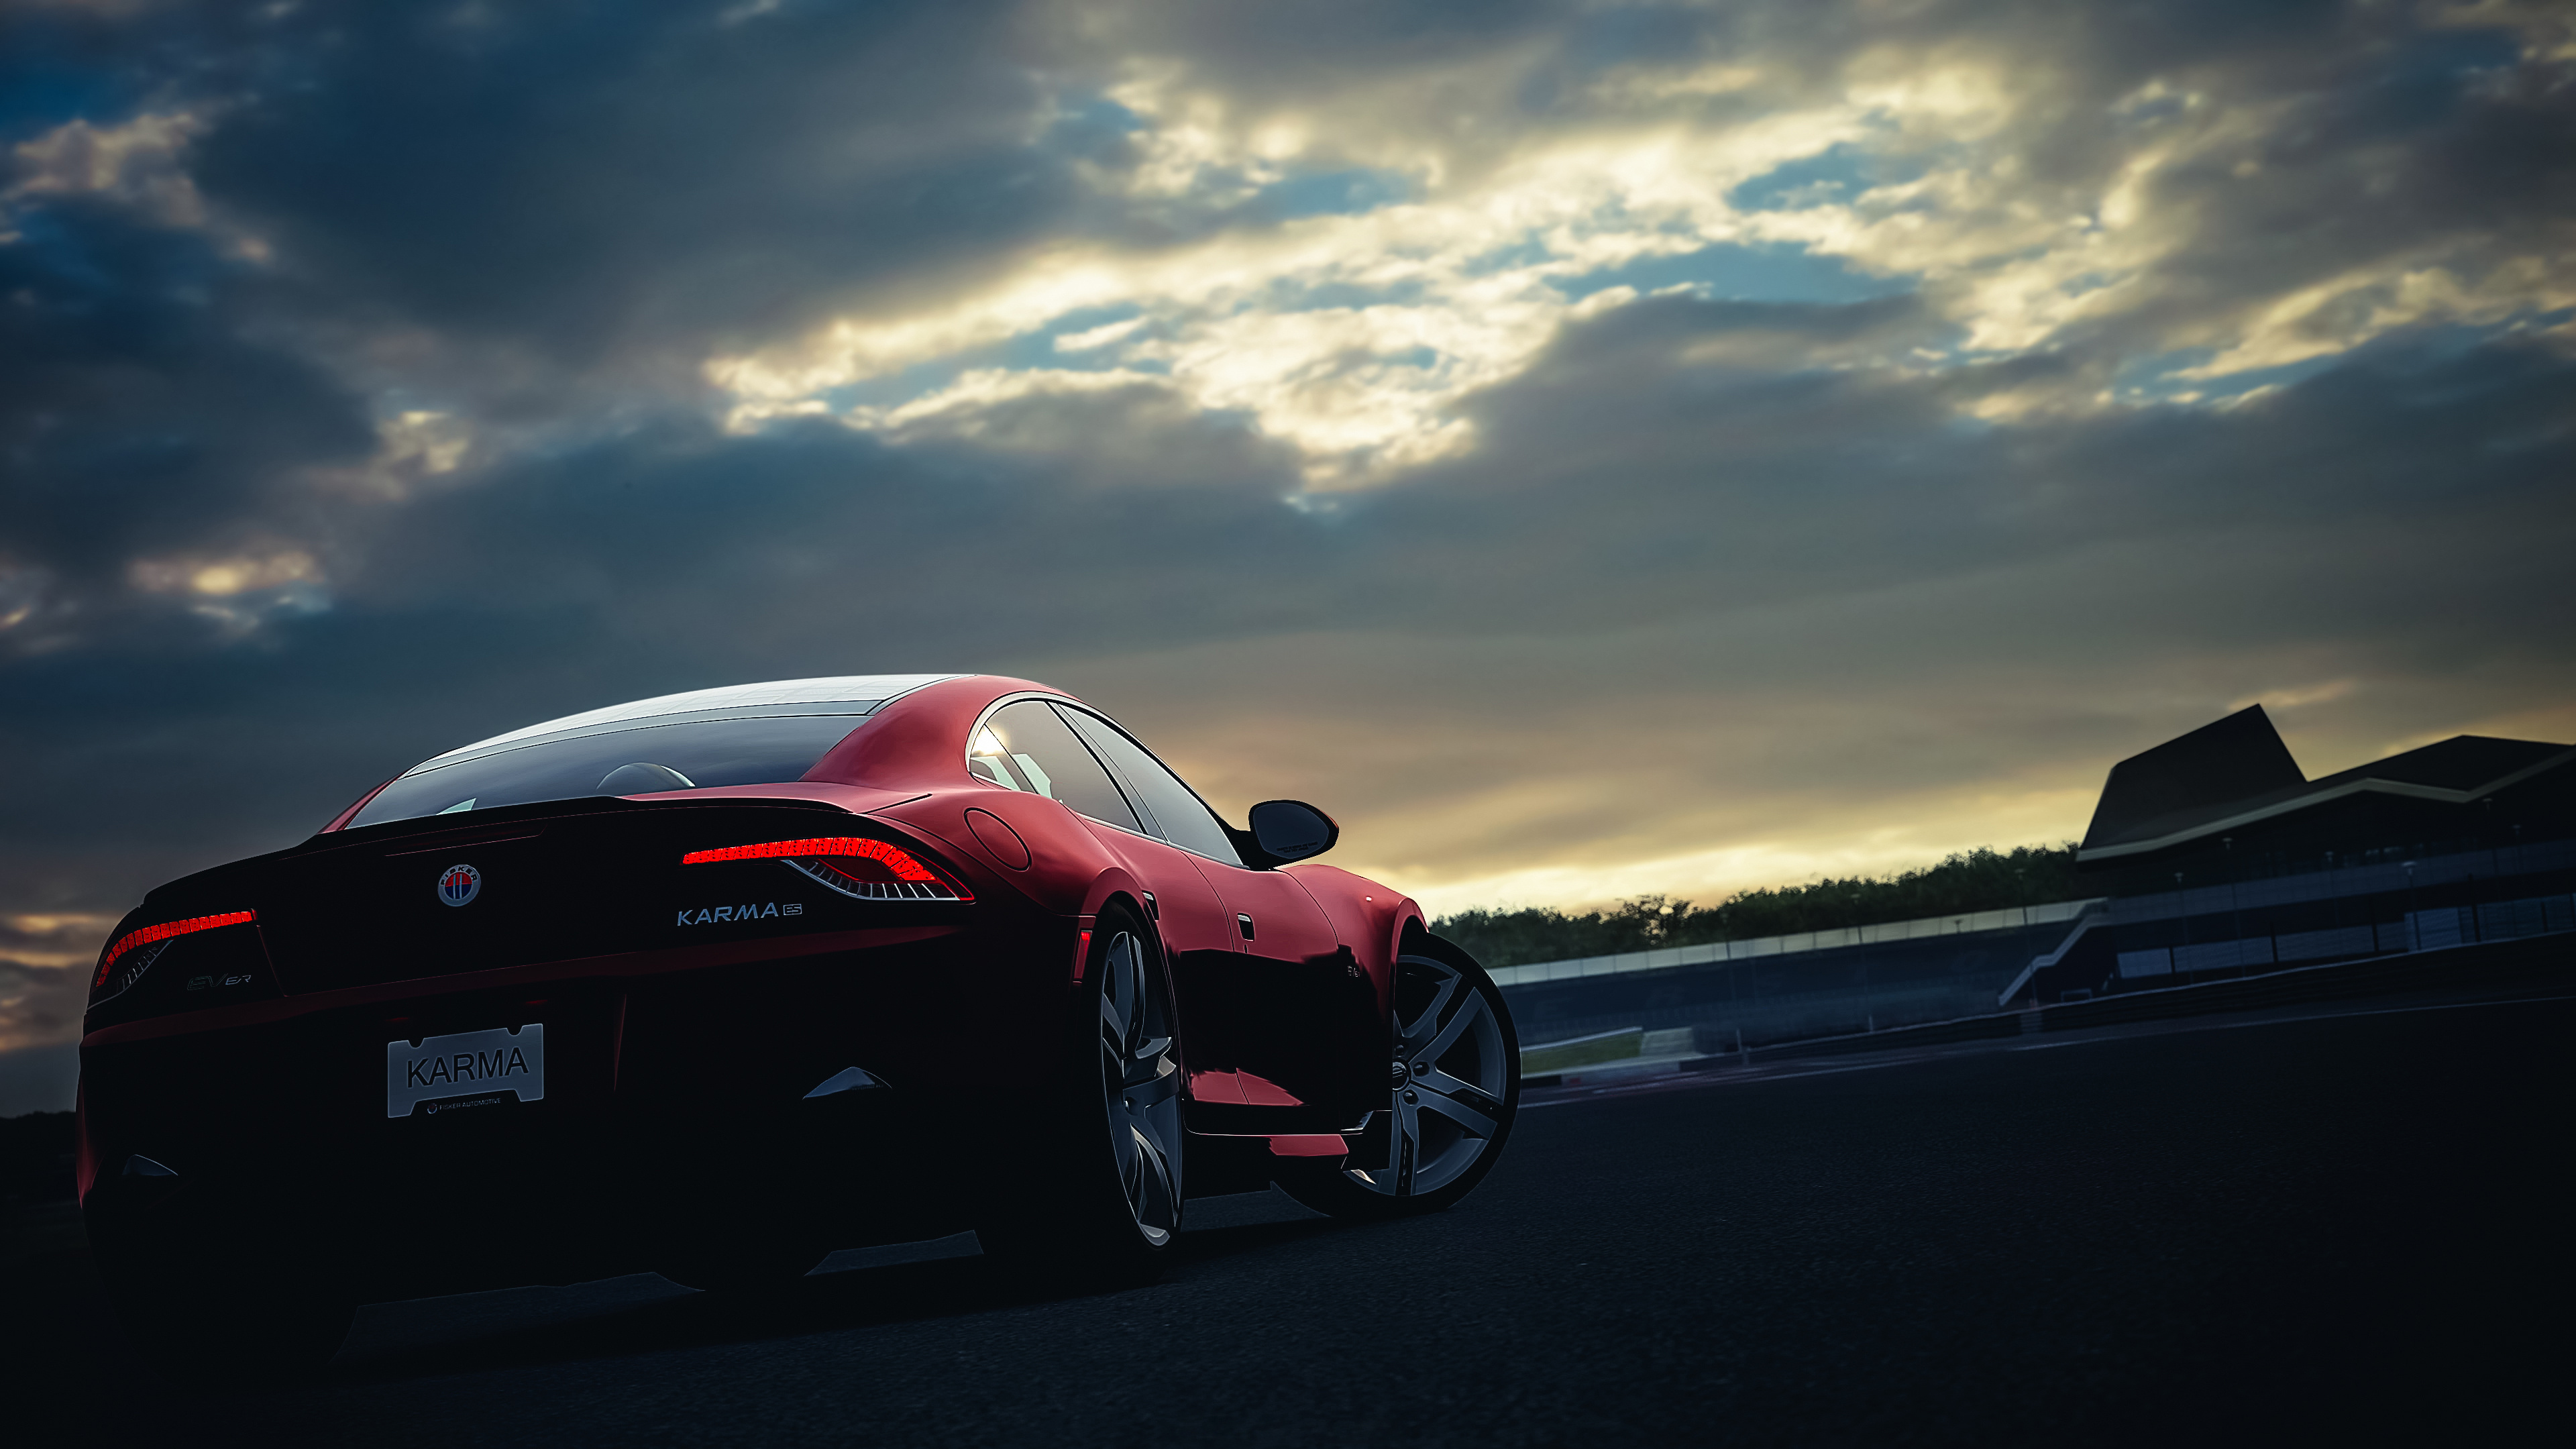 4k Cars Wallpapers High Quality Download Free